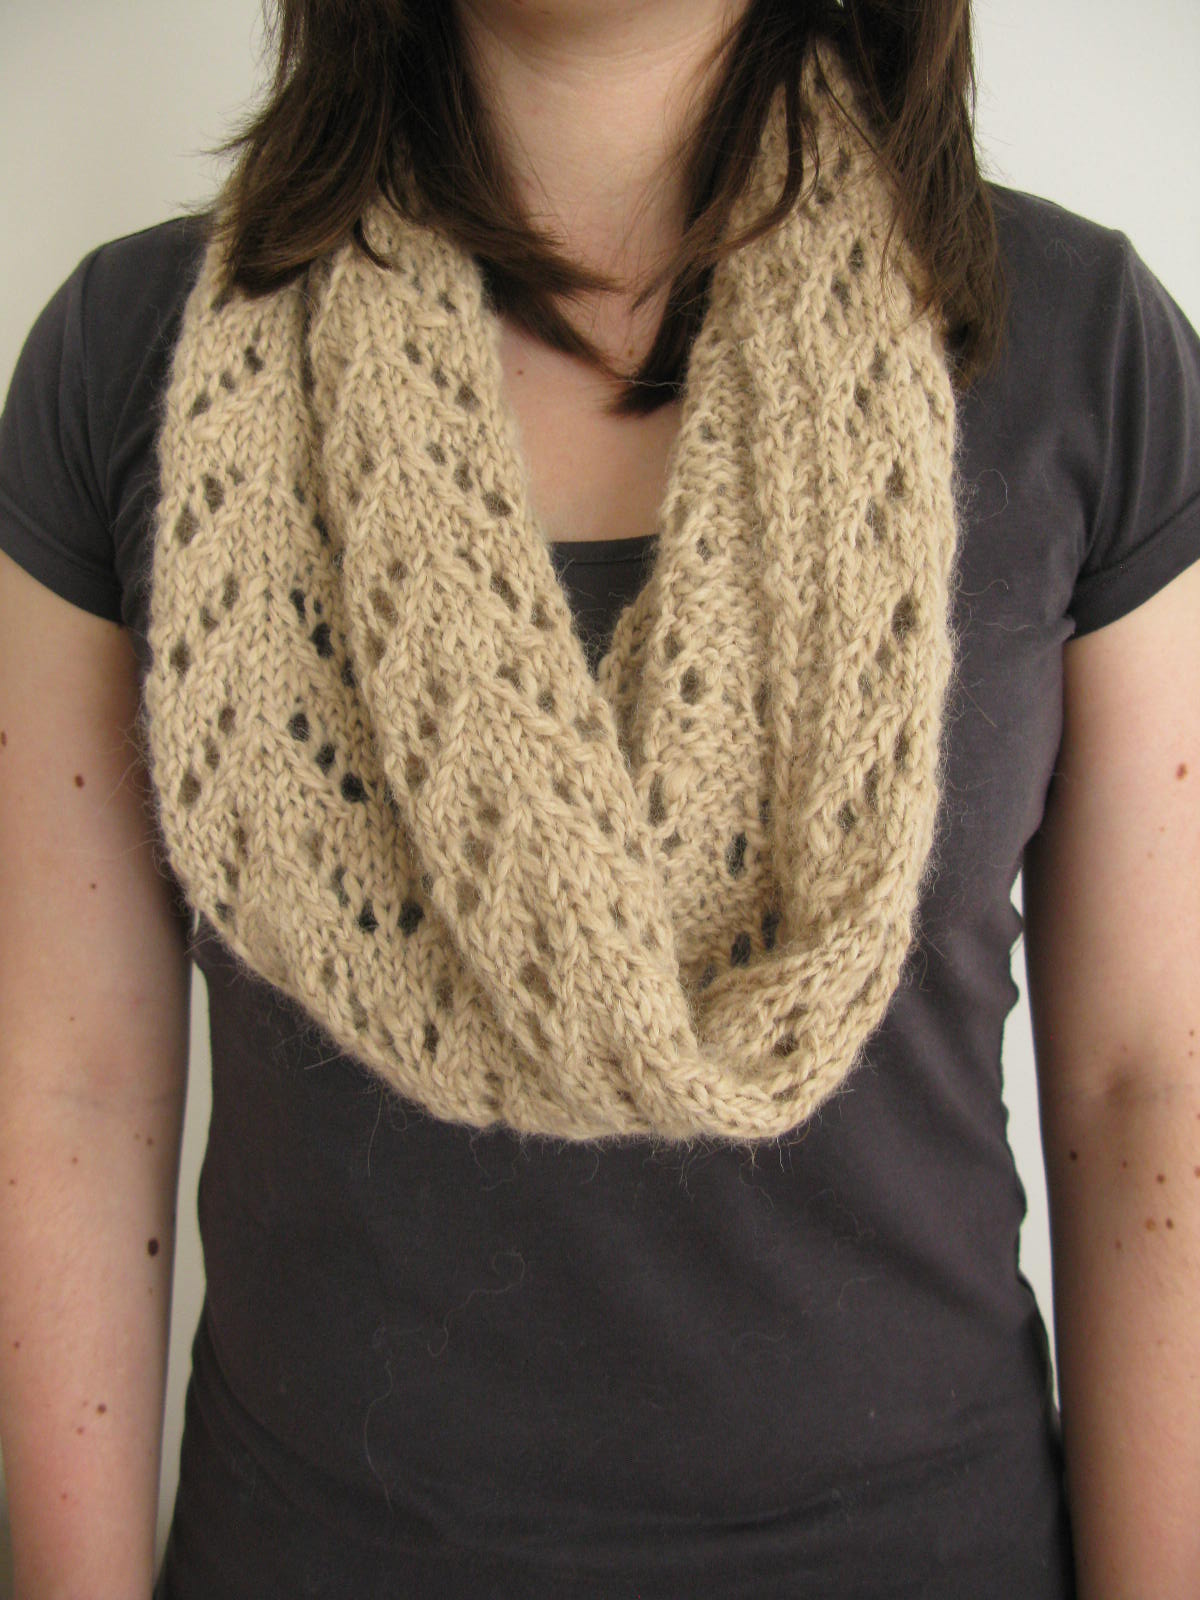 Littletheorem pattern gallery lace scarf cowl knitting pattern handspun yarn bankloansurffo Choice Image